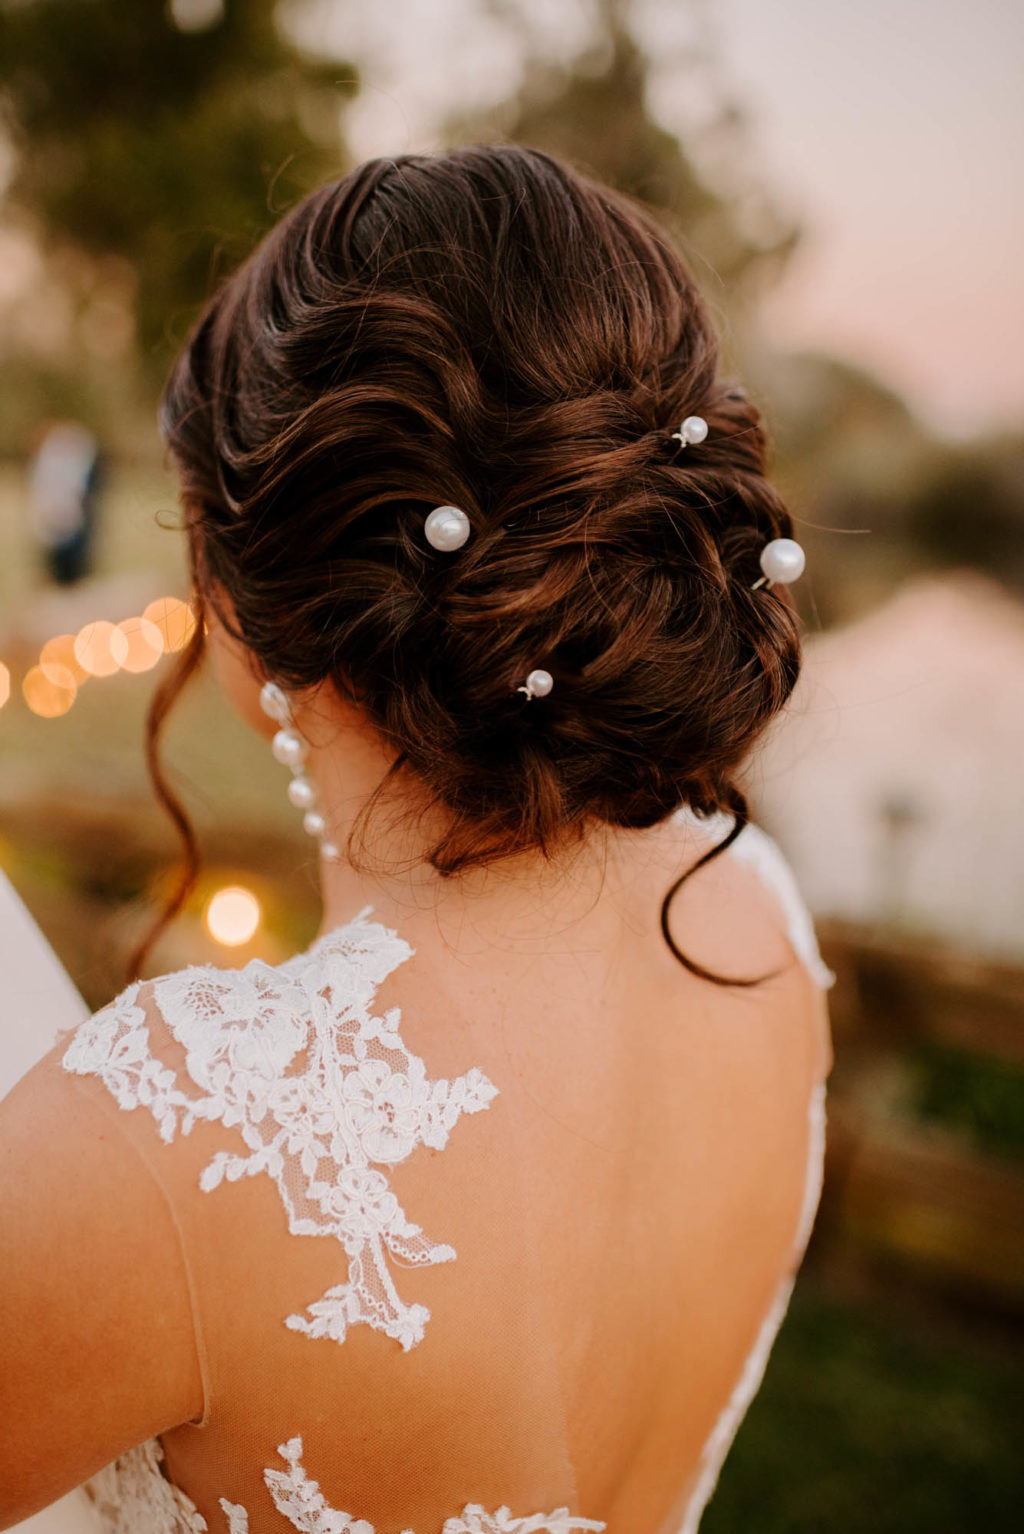 Loose Chignon Bridal Hairstyle Inspiration with Pearl Pins Sheath Illusion Lace Bridal Gown wedding Dress | Femme Akoi Beauty Studio